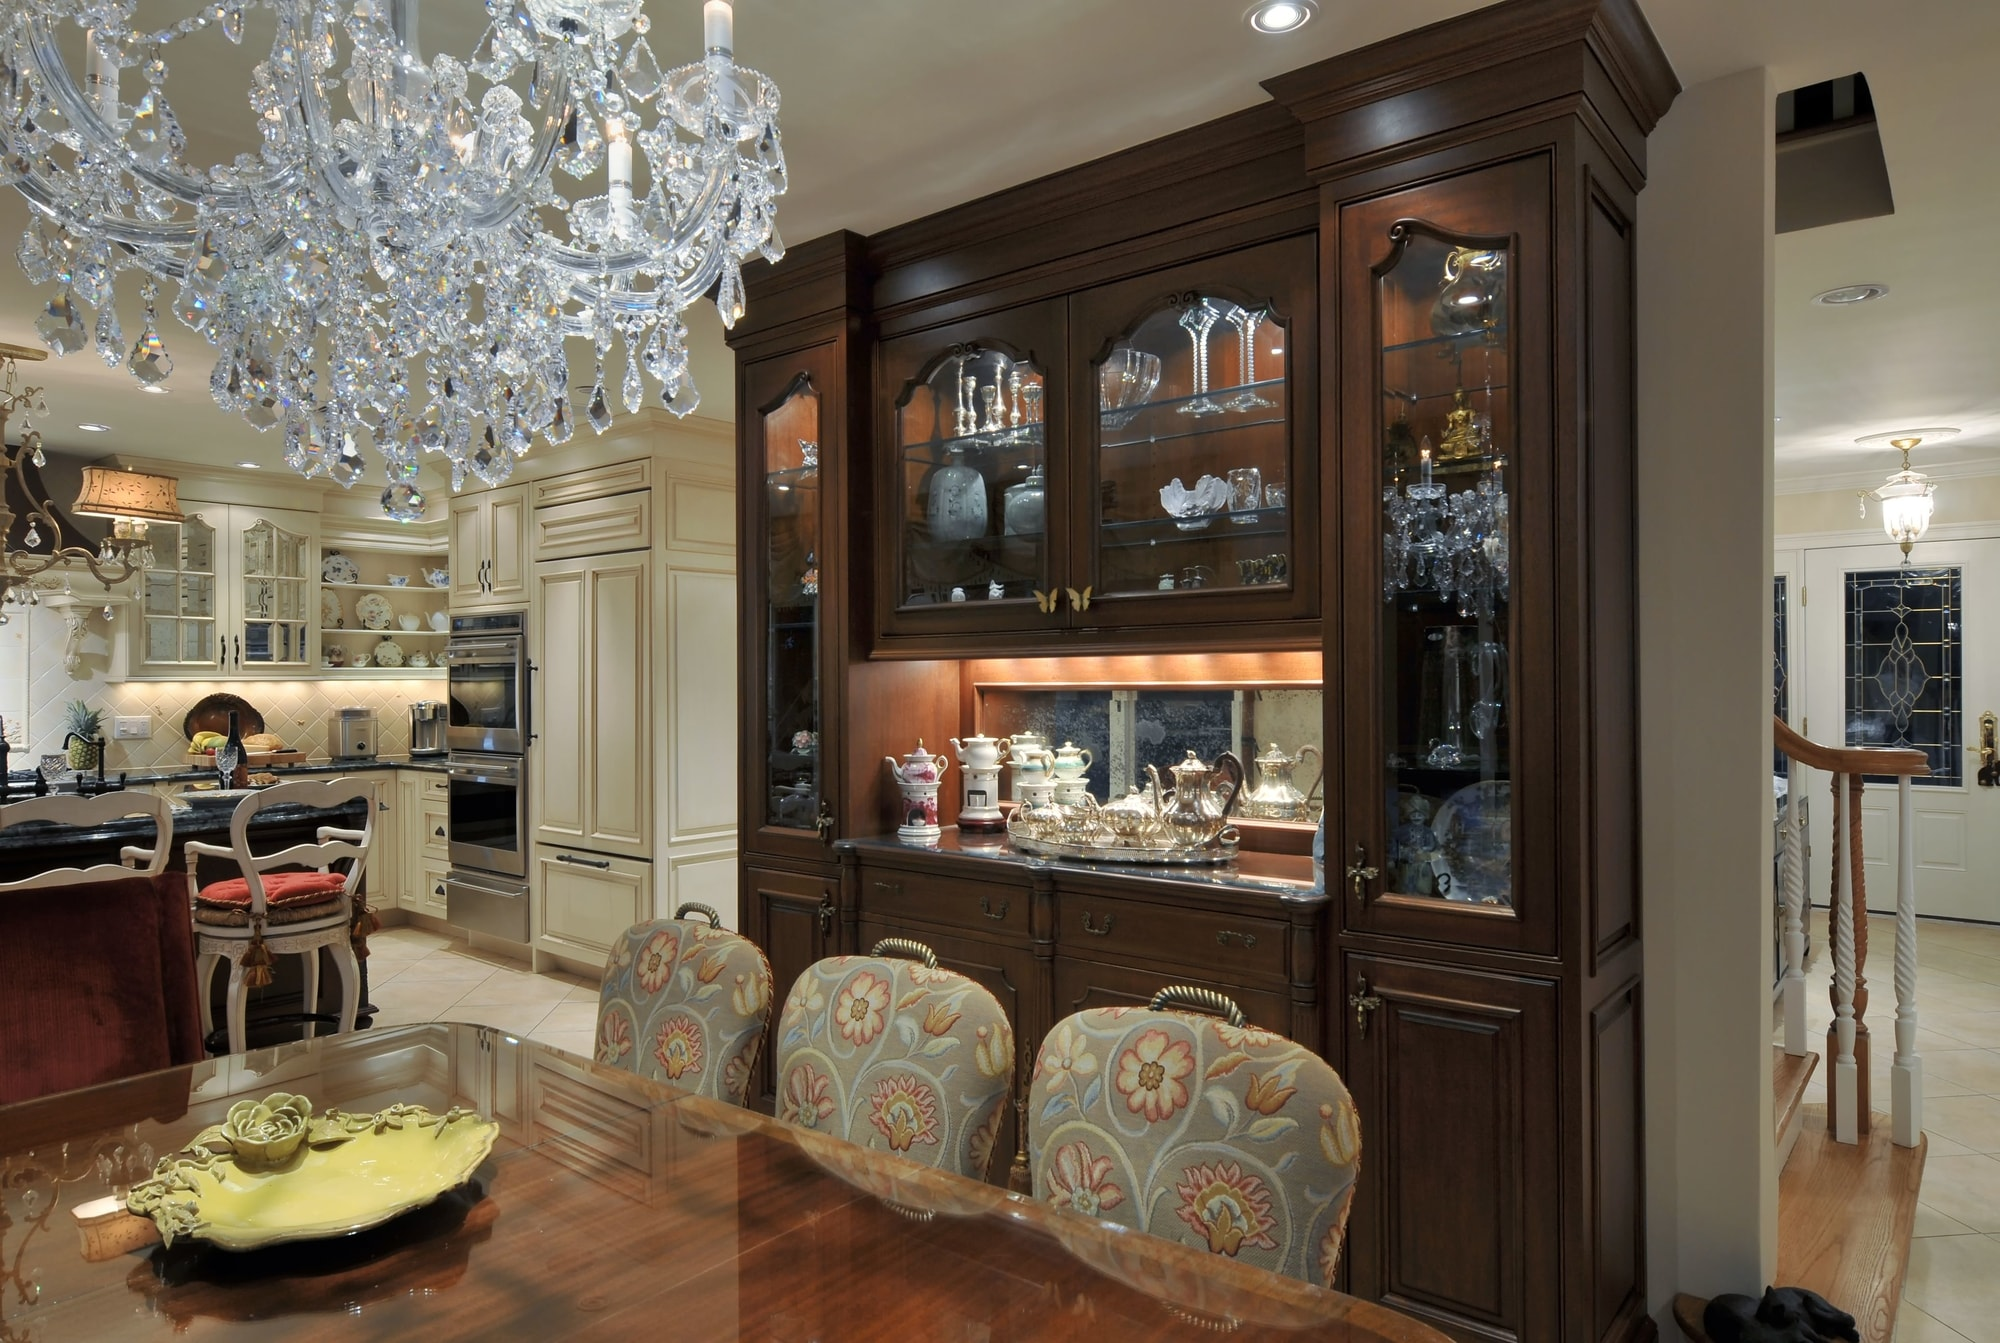 Traditional style kitchen with bright light setting and crystal chandelier